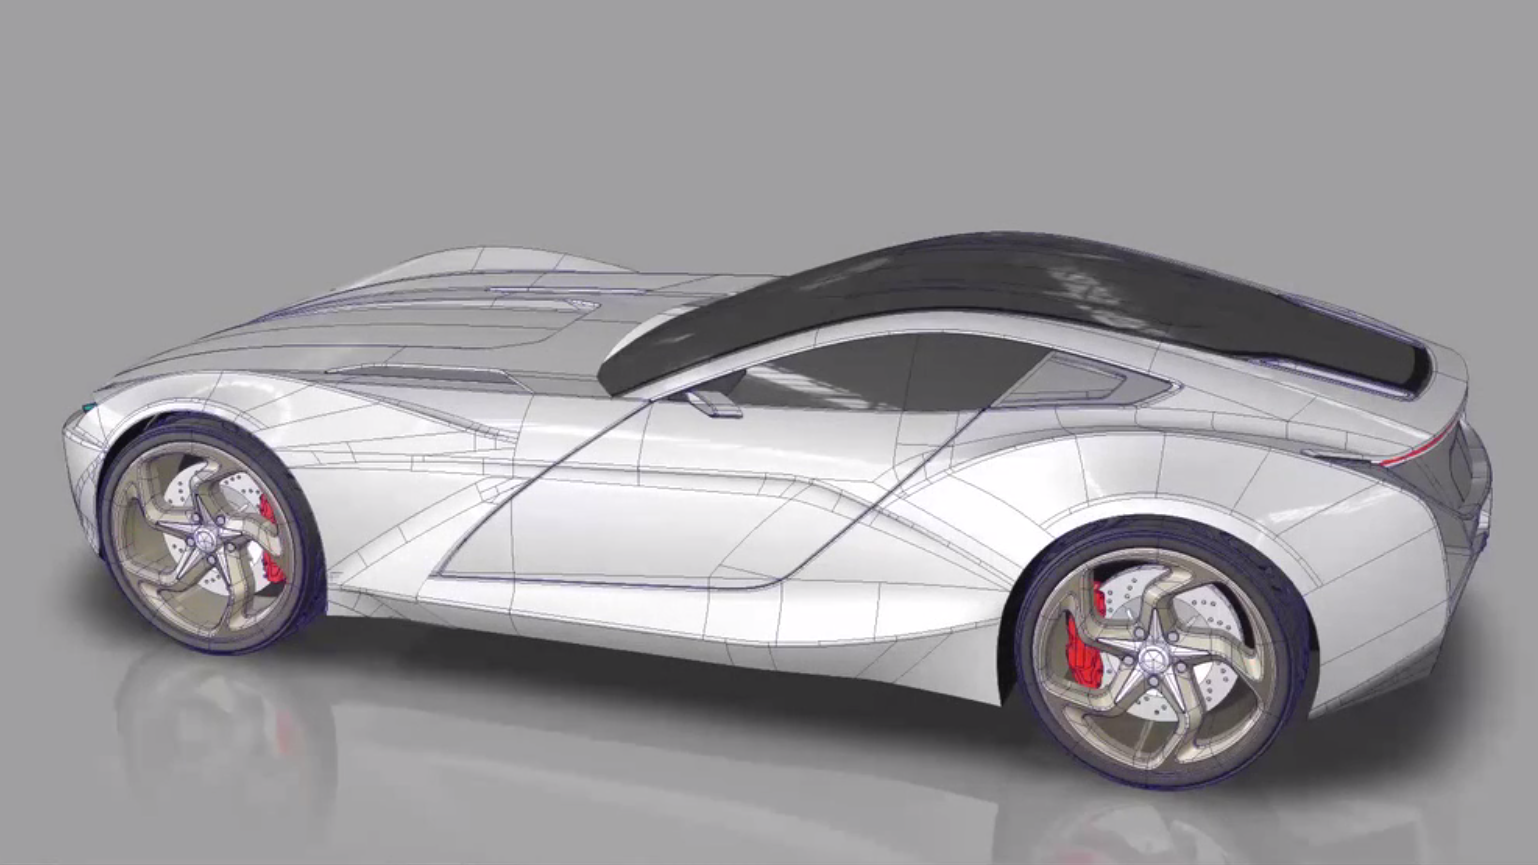 1. Learn the Basics of Automotive Design